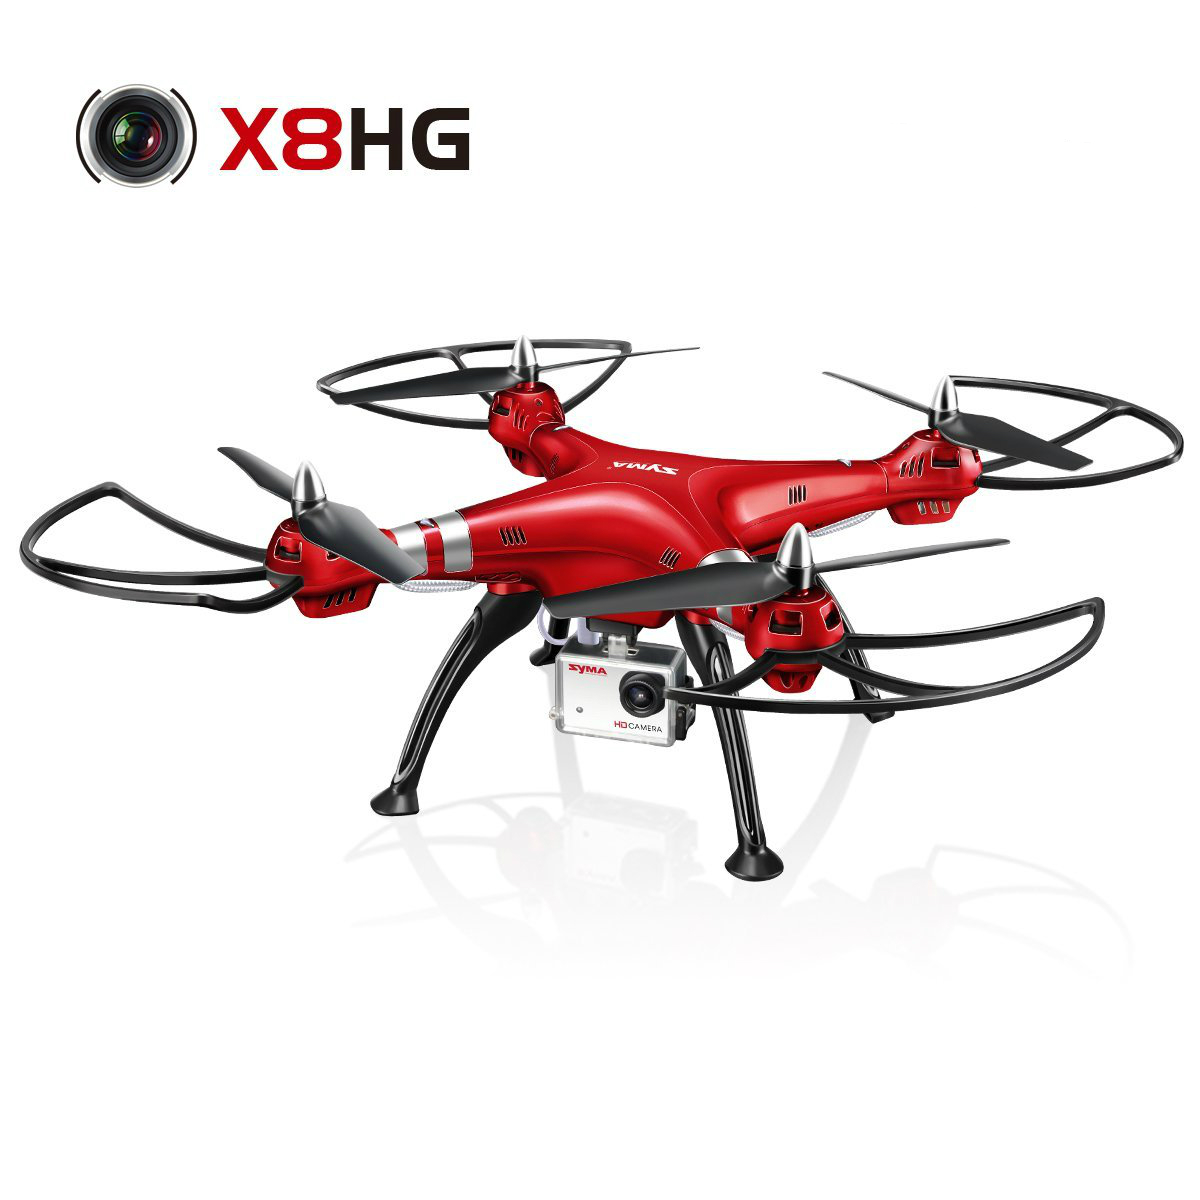 Syma X8HG 8.0MP HD Camera Drone with Altitude Hold & Headless Mode 3D Flips RC Quadcopter syma x15w drone with 0 3mp camera wifi fpv rc quadcopter g sensor barometer set height headless mode 3d flips app control drone